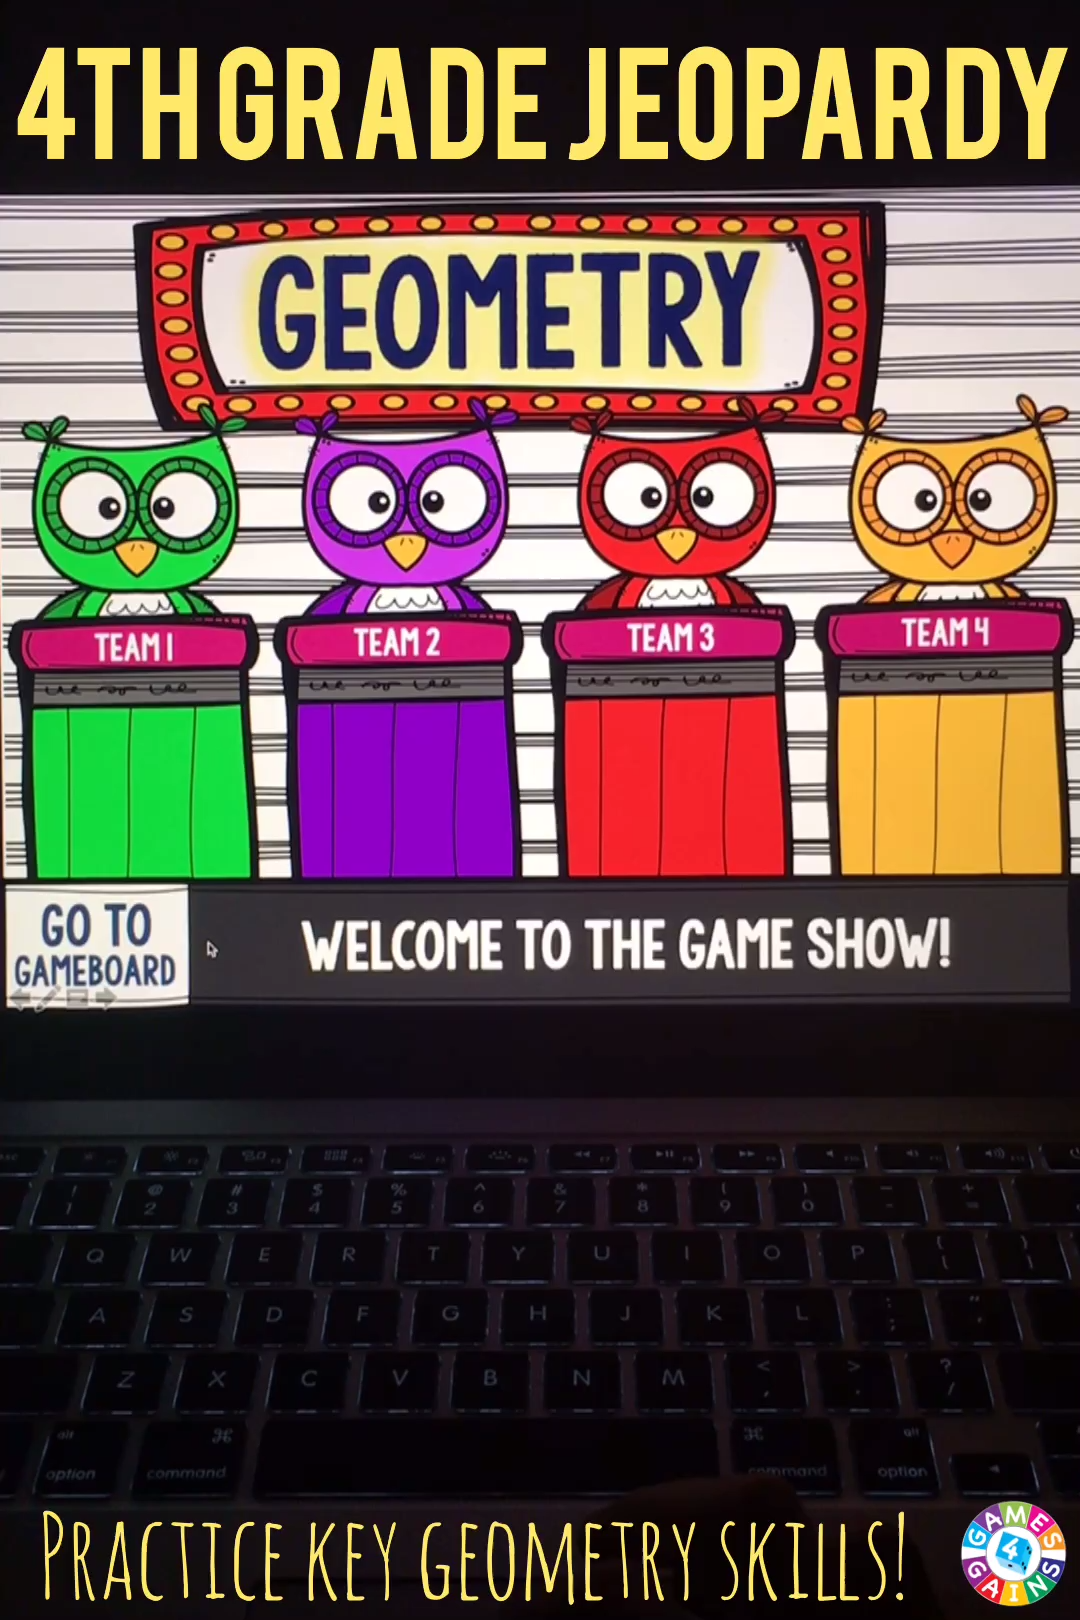 4th Grade Geometry Jeopardy Game Show 4 G 1 4 G 2 4 G 3 4 Oa 5 Video Video Jeopardy Game Geometry Games Quadrilaterals Activities [ 1620 x 1080 Pixel ]